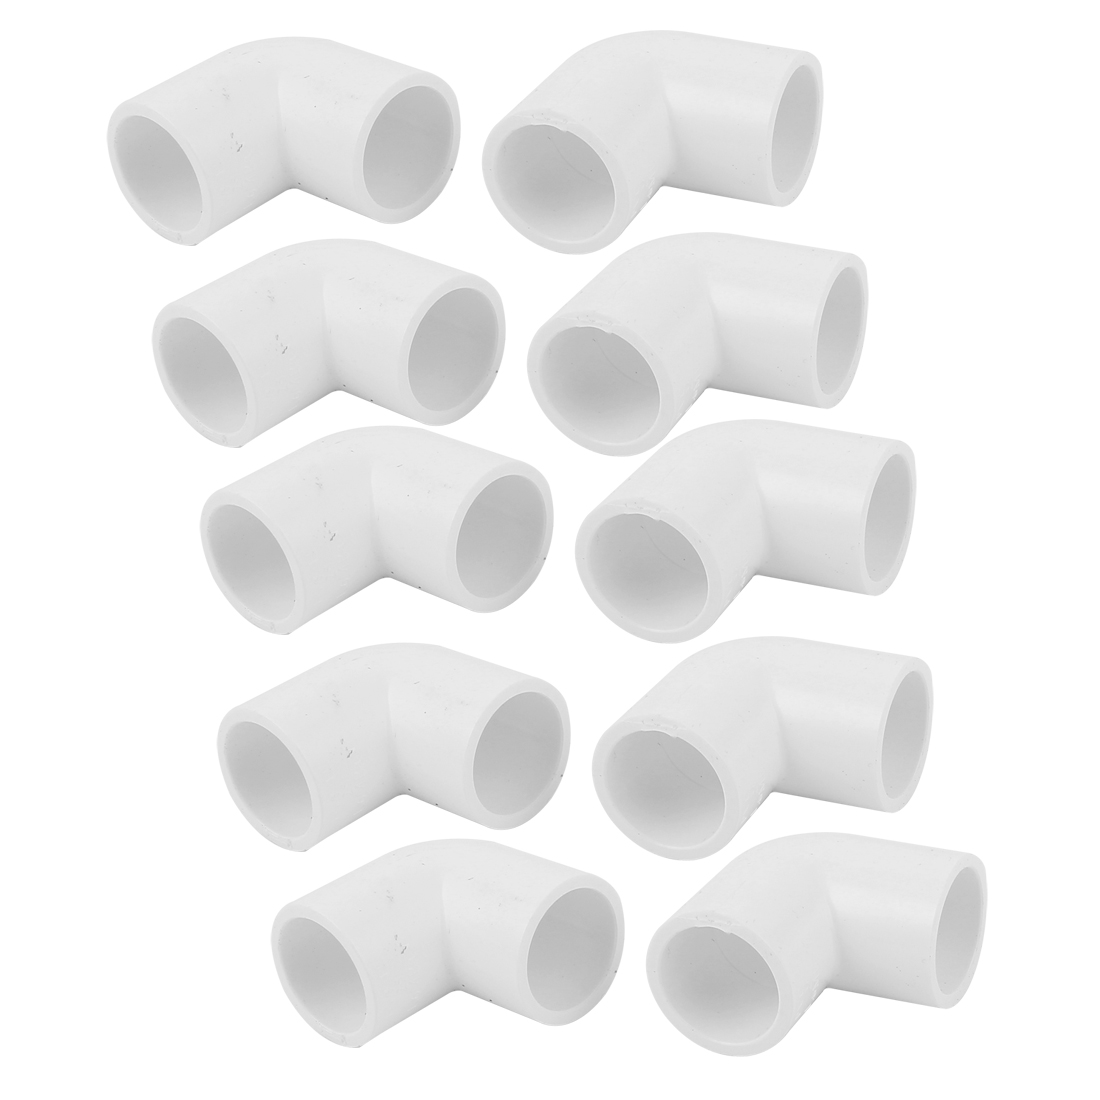 25mm Inner Dia 90 Degree 2 Way Water Liquid PVC Elbow Pipe Fitting White 10pcs